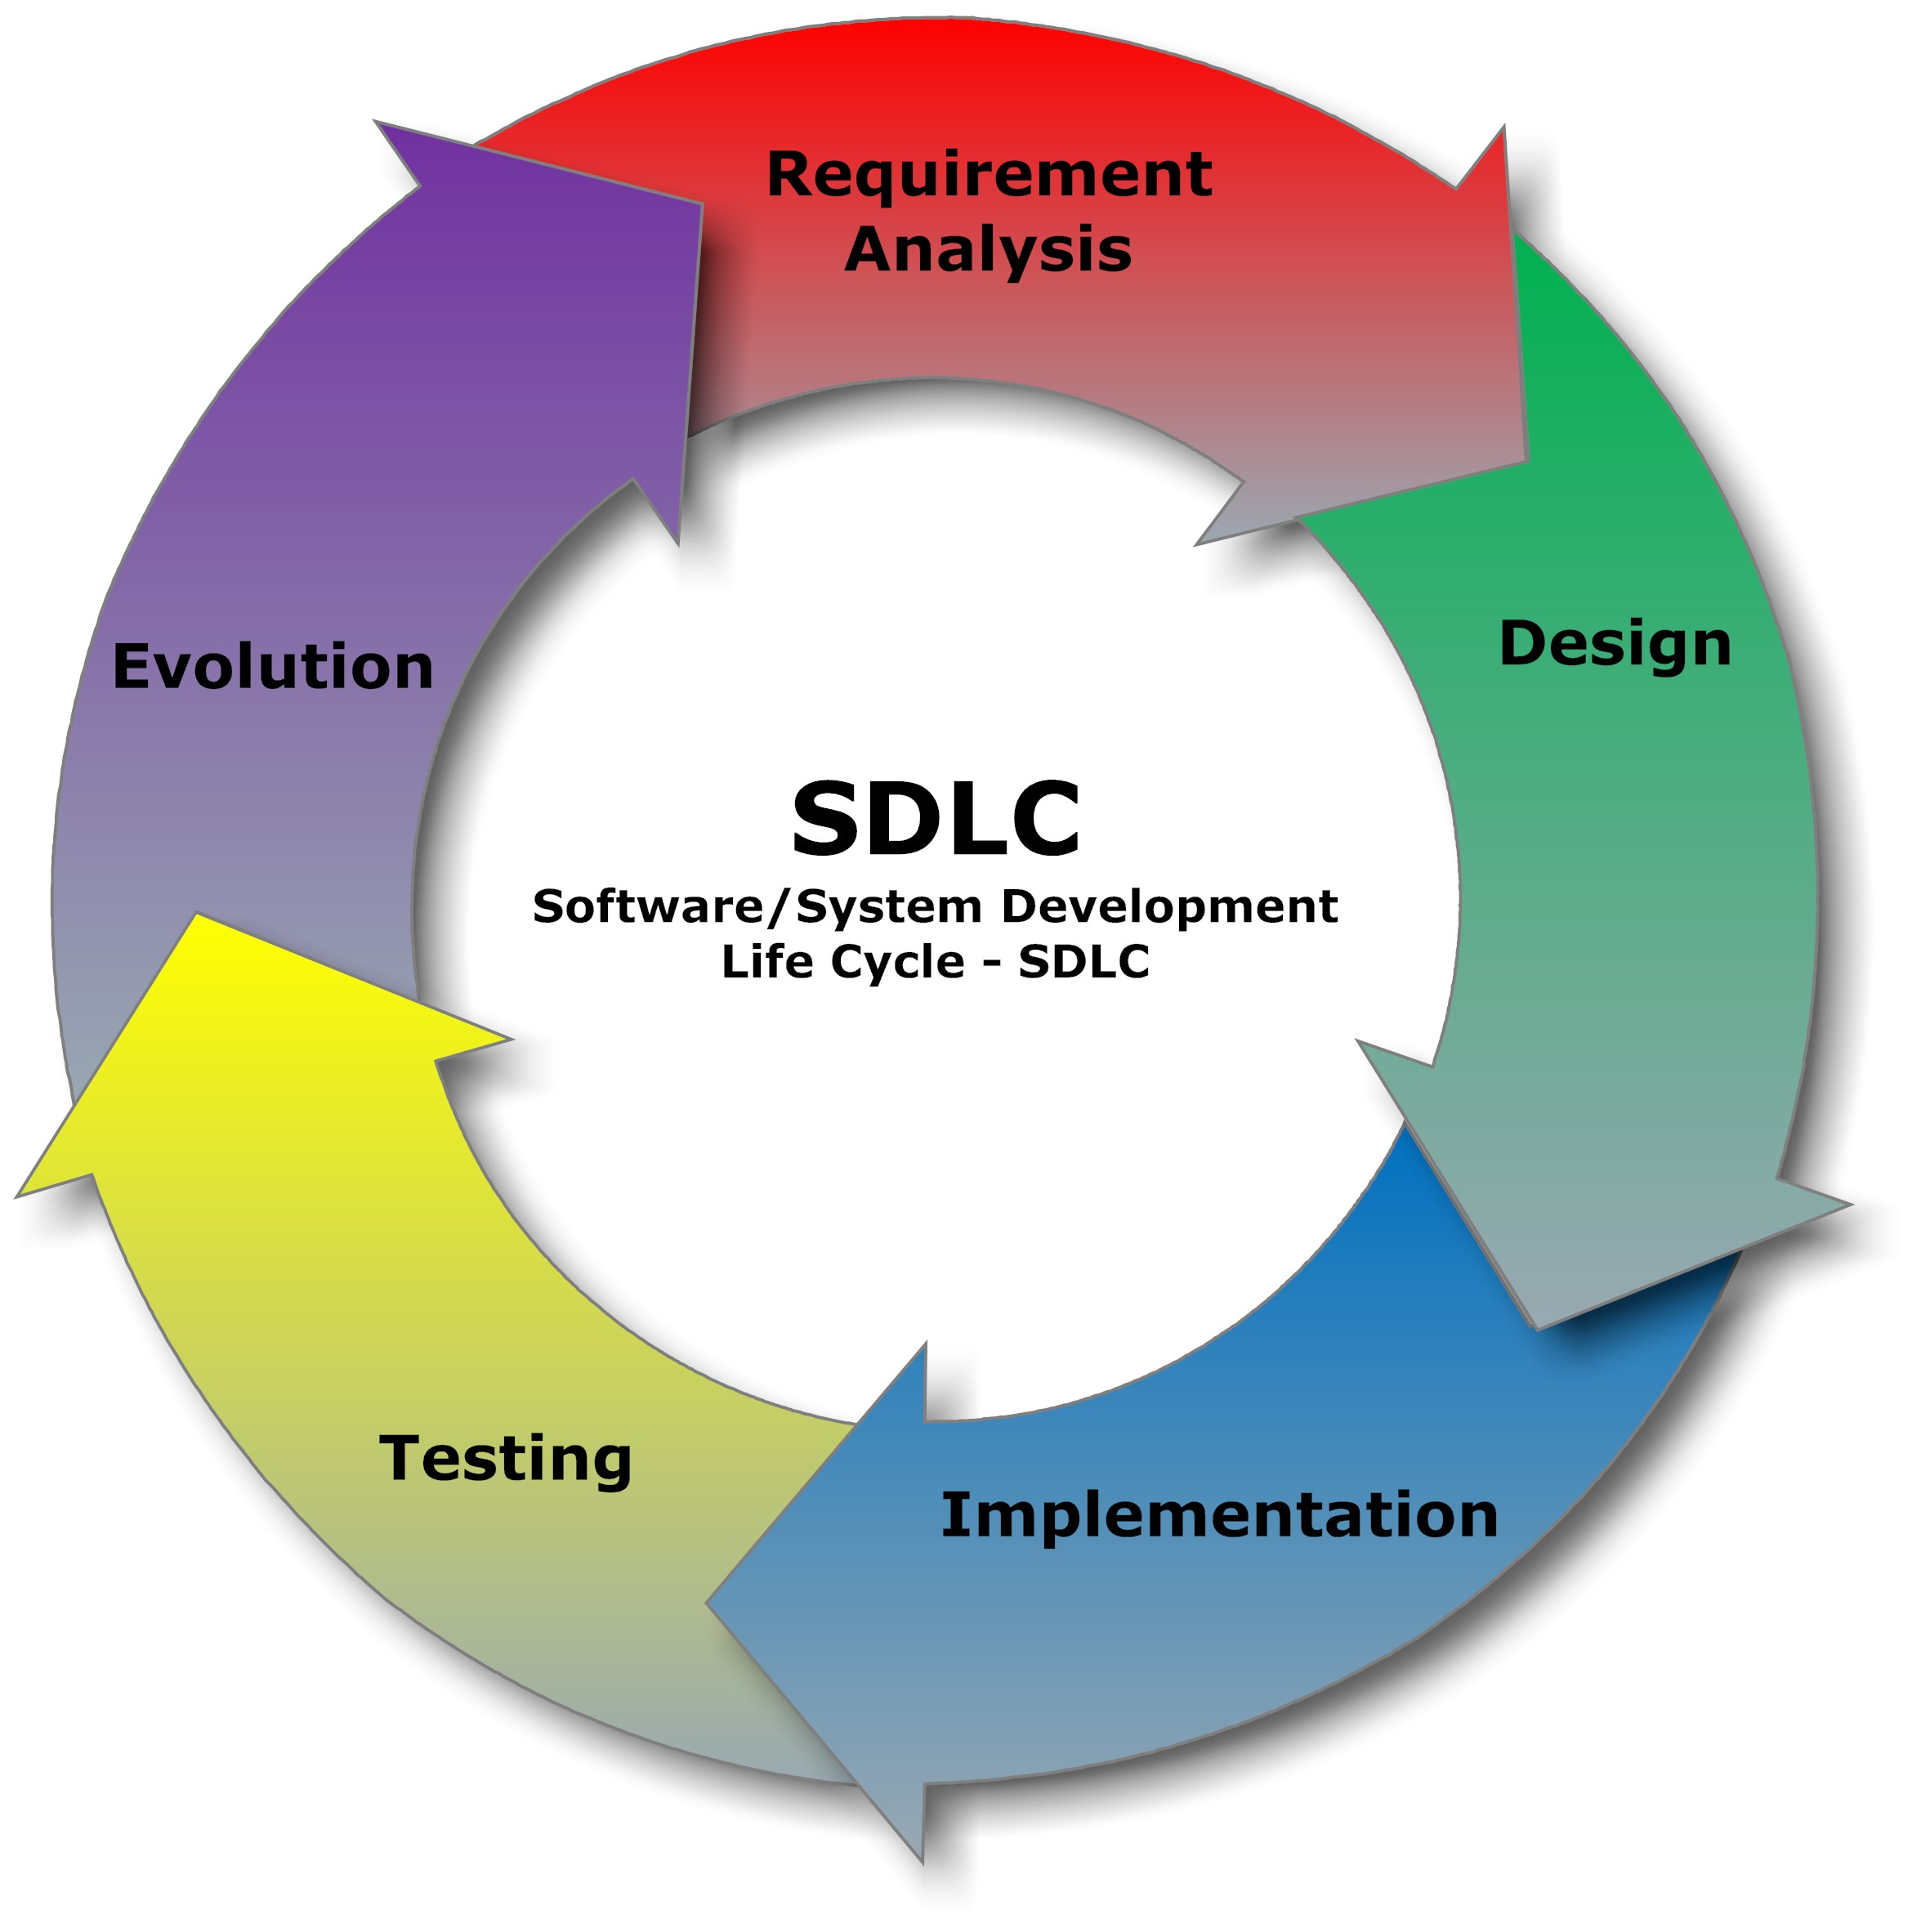 software development lifecycle Software development life cycle, sdlc for short, is a well-defined, structured sequence of stages in software engineering to develop the intended software product.